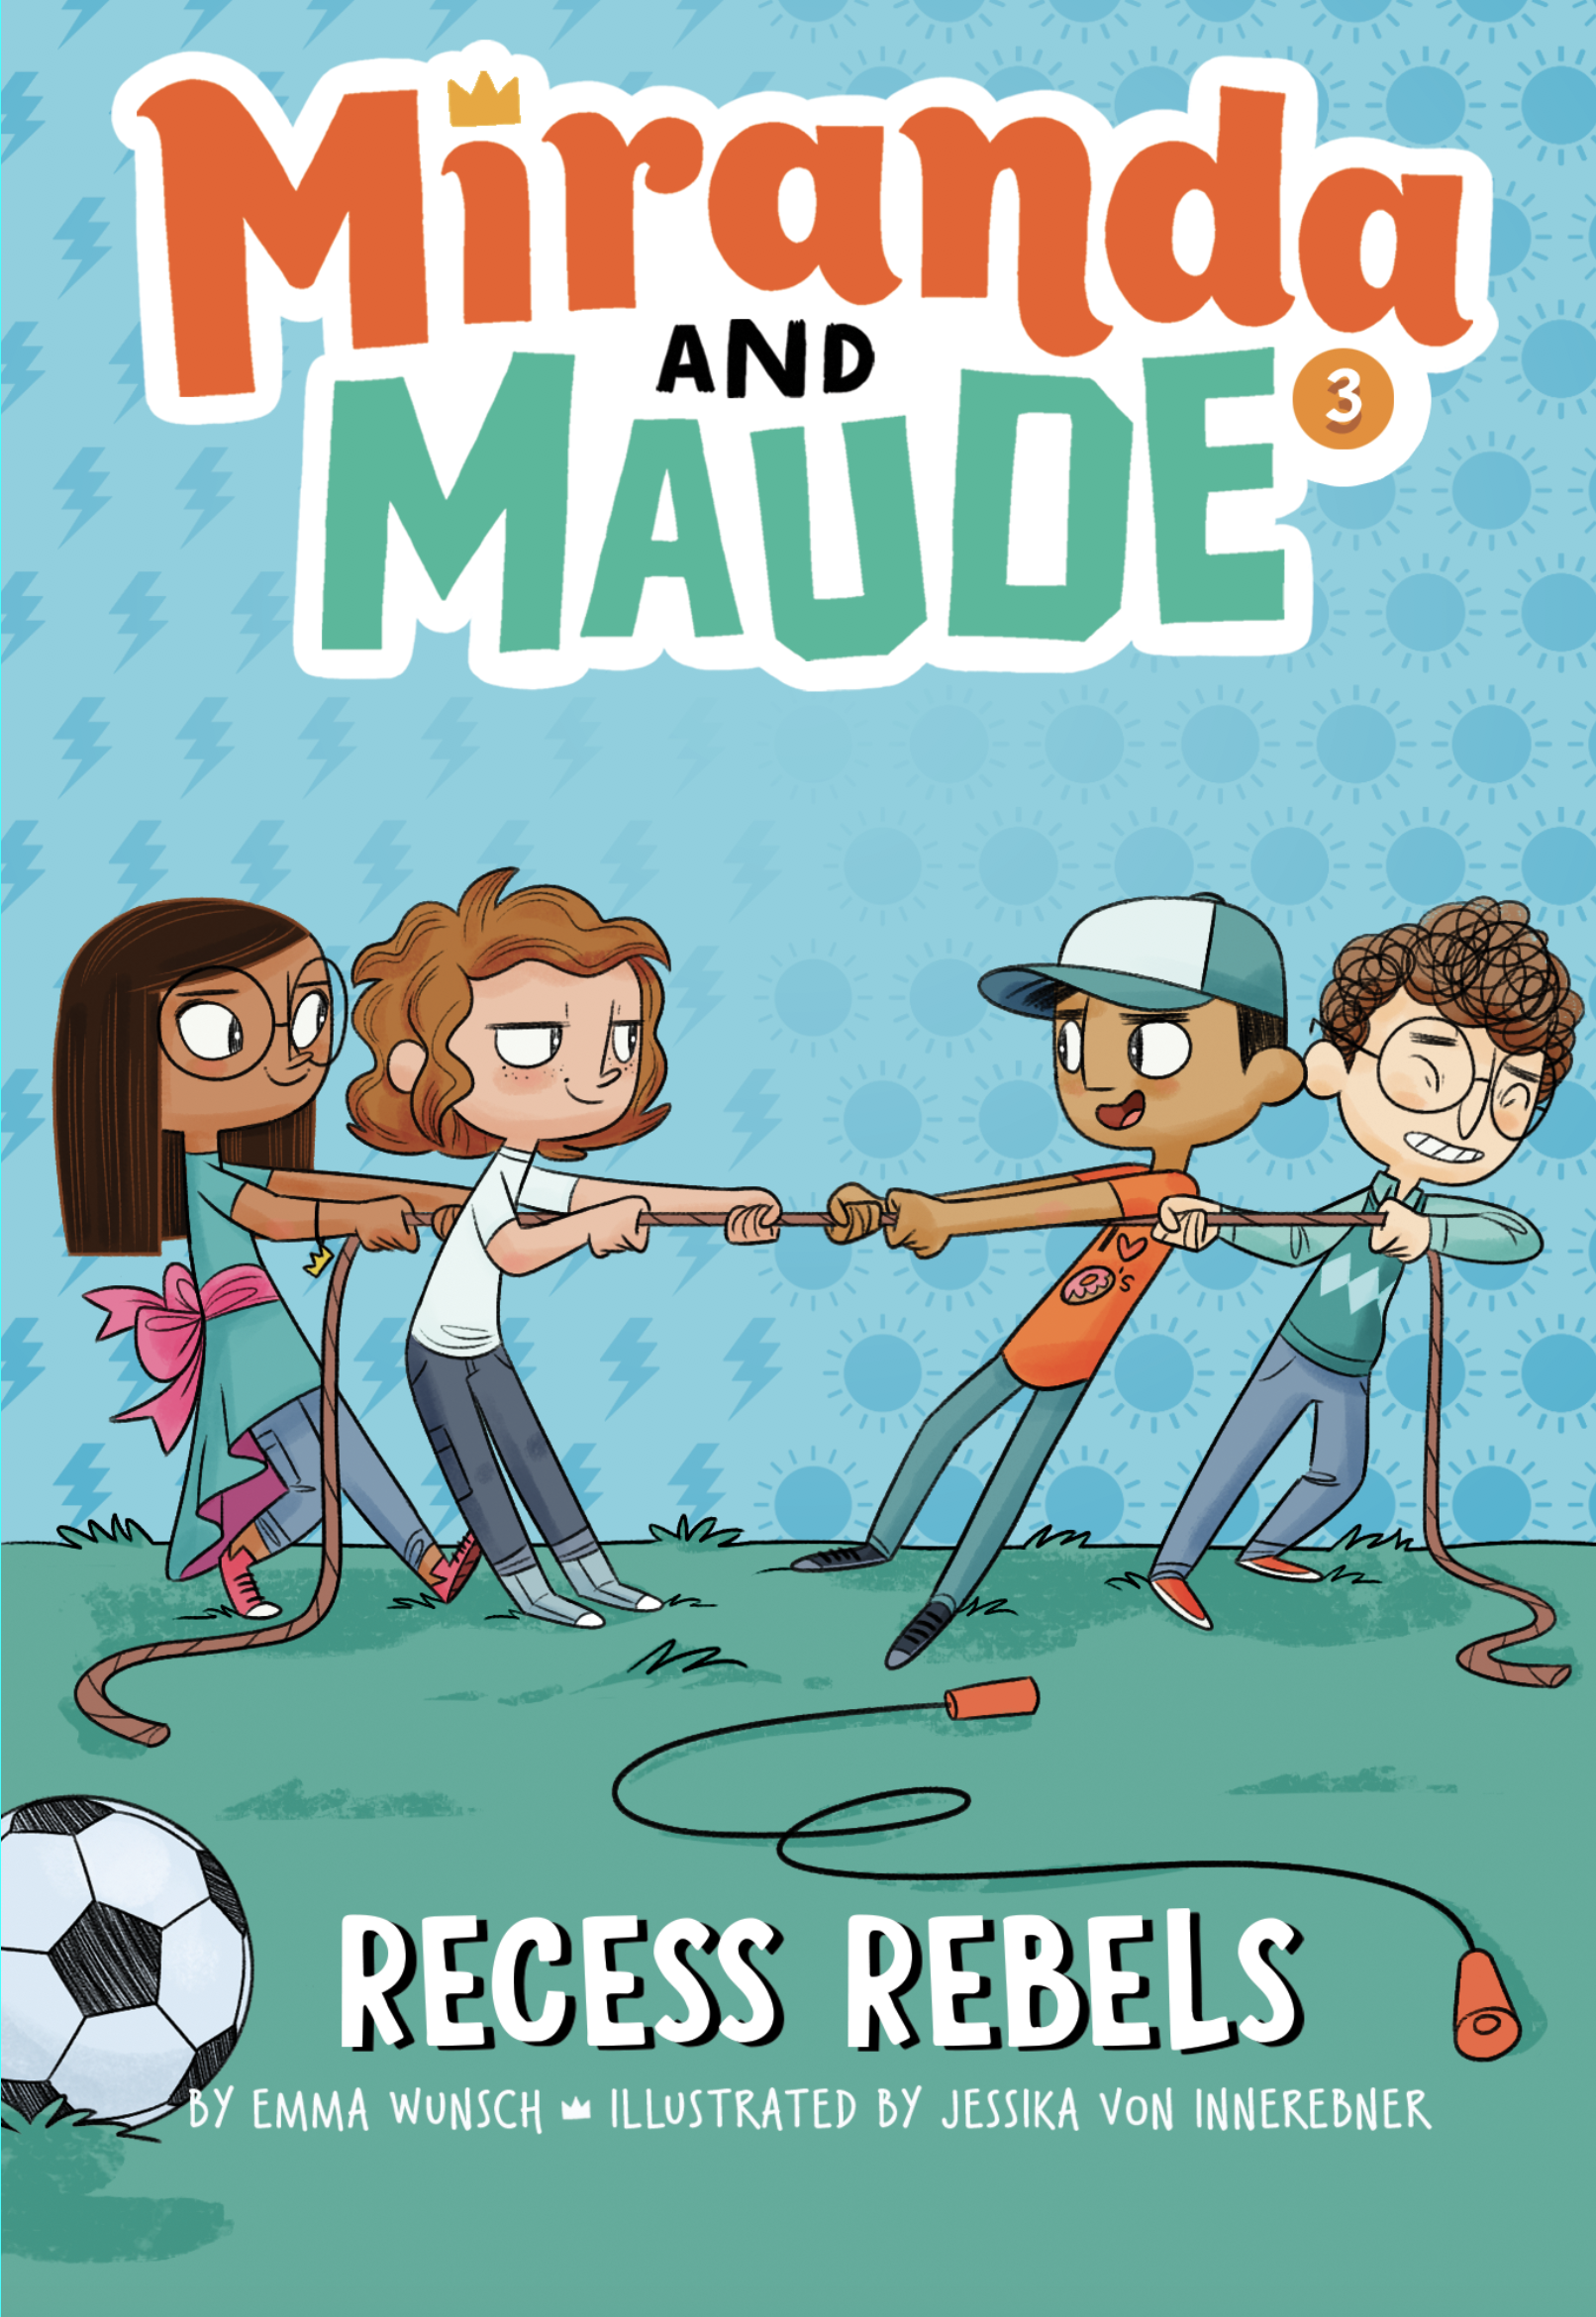 RECESS REBELS book 3 in the MIRANDA and MAUDE series will be out on 9/10/19! - The girls and boys of 3B aren't getting along. It starts with a game of tag and ends with a tug of war. In between, there are sneak attacks, a girls-only newspaper, a doughnut filled with cheese, and one stolen Frizzle chicken. Maude gets lots of opportunities to protest, but in the end, it's Miranda who learns to stand up for what she believes in.Pre-order today! Signed copies available from my local indie Norwich books.